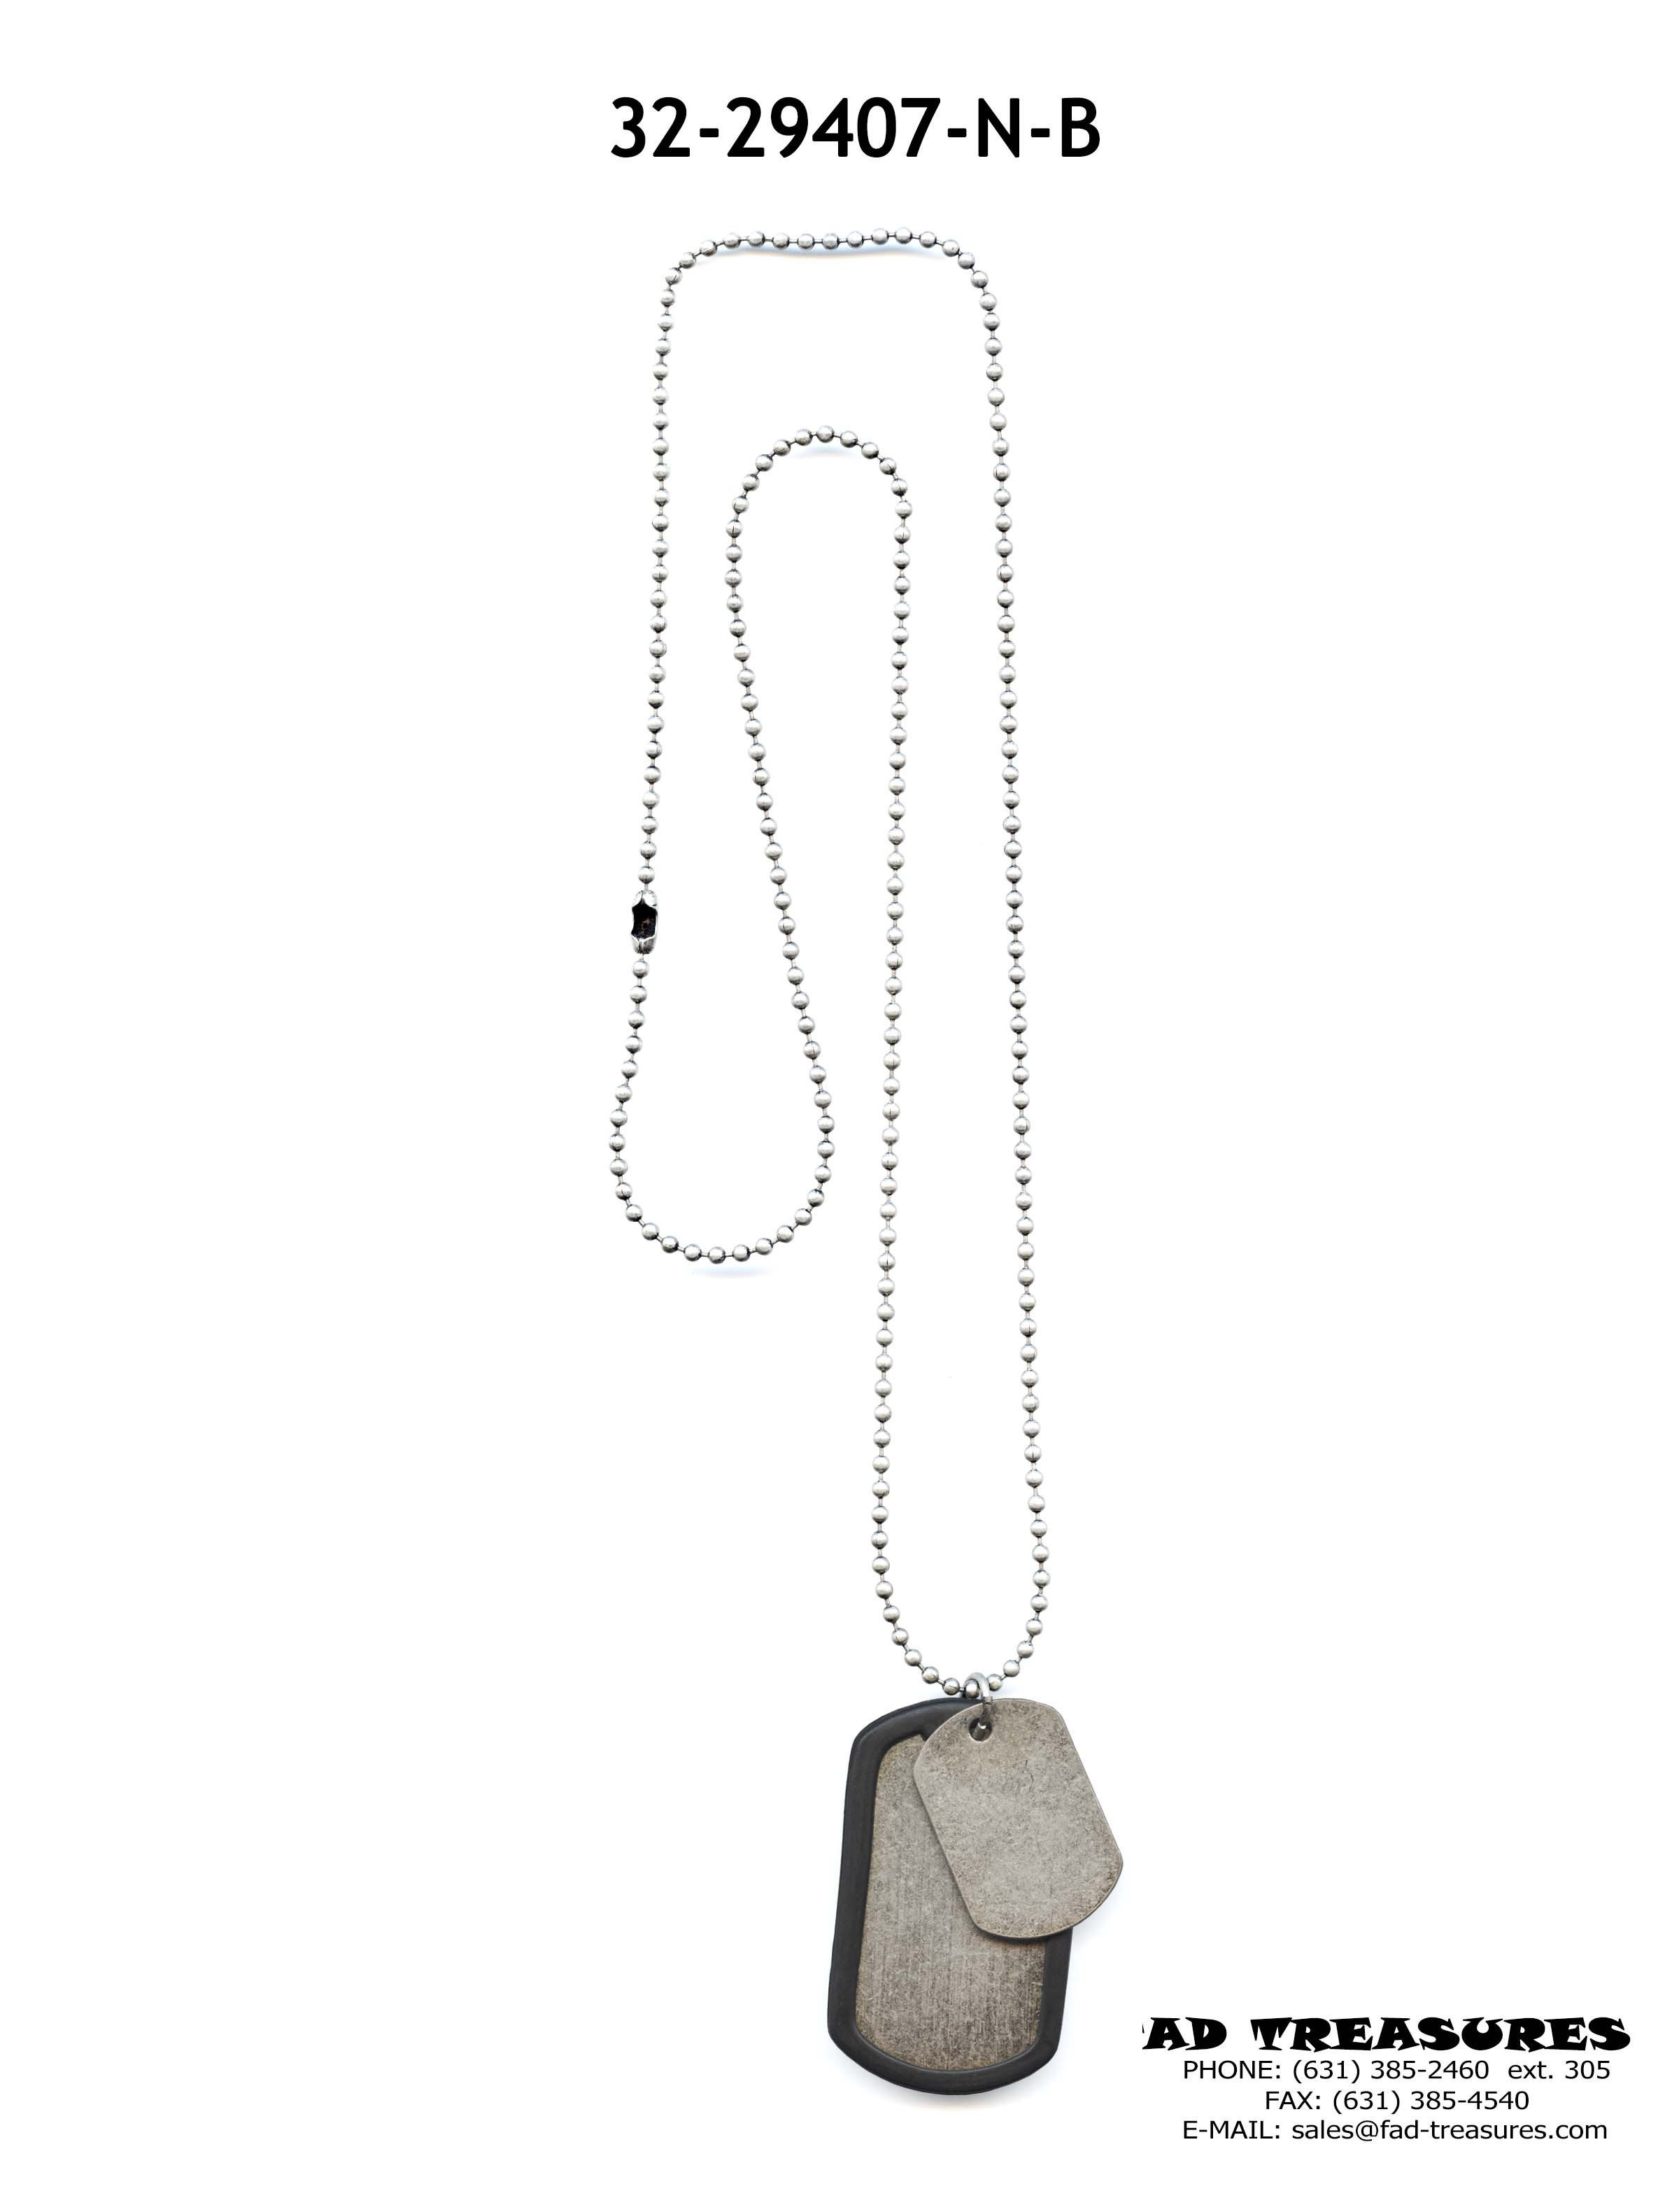 Burnish Silver Ball Chain Black Rubber Dog Tags Necklace